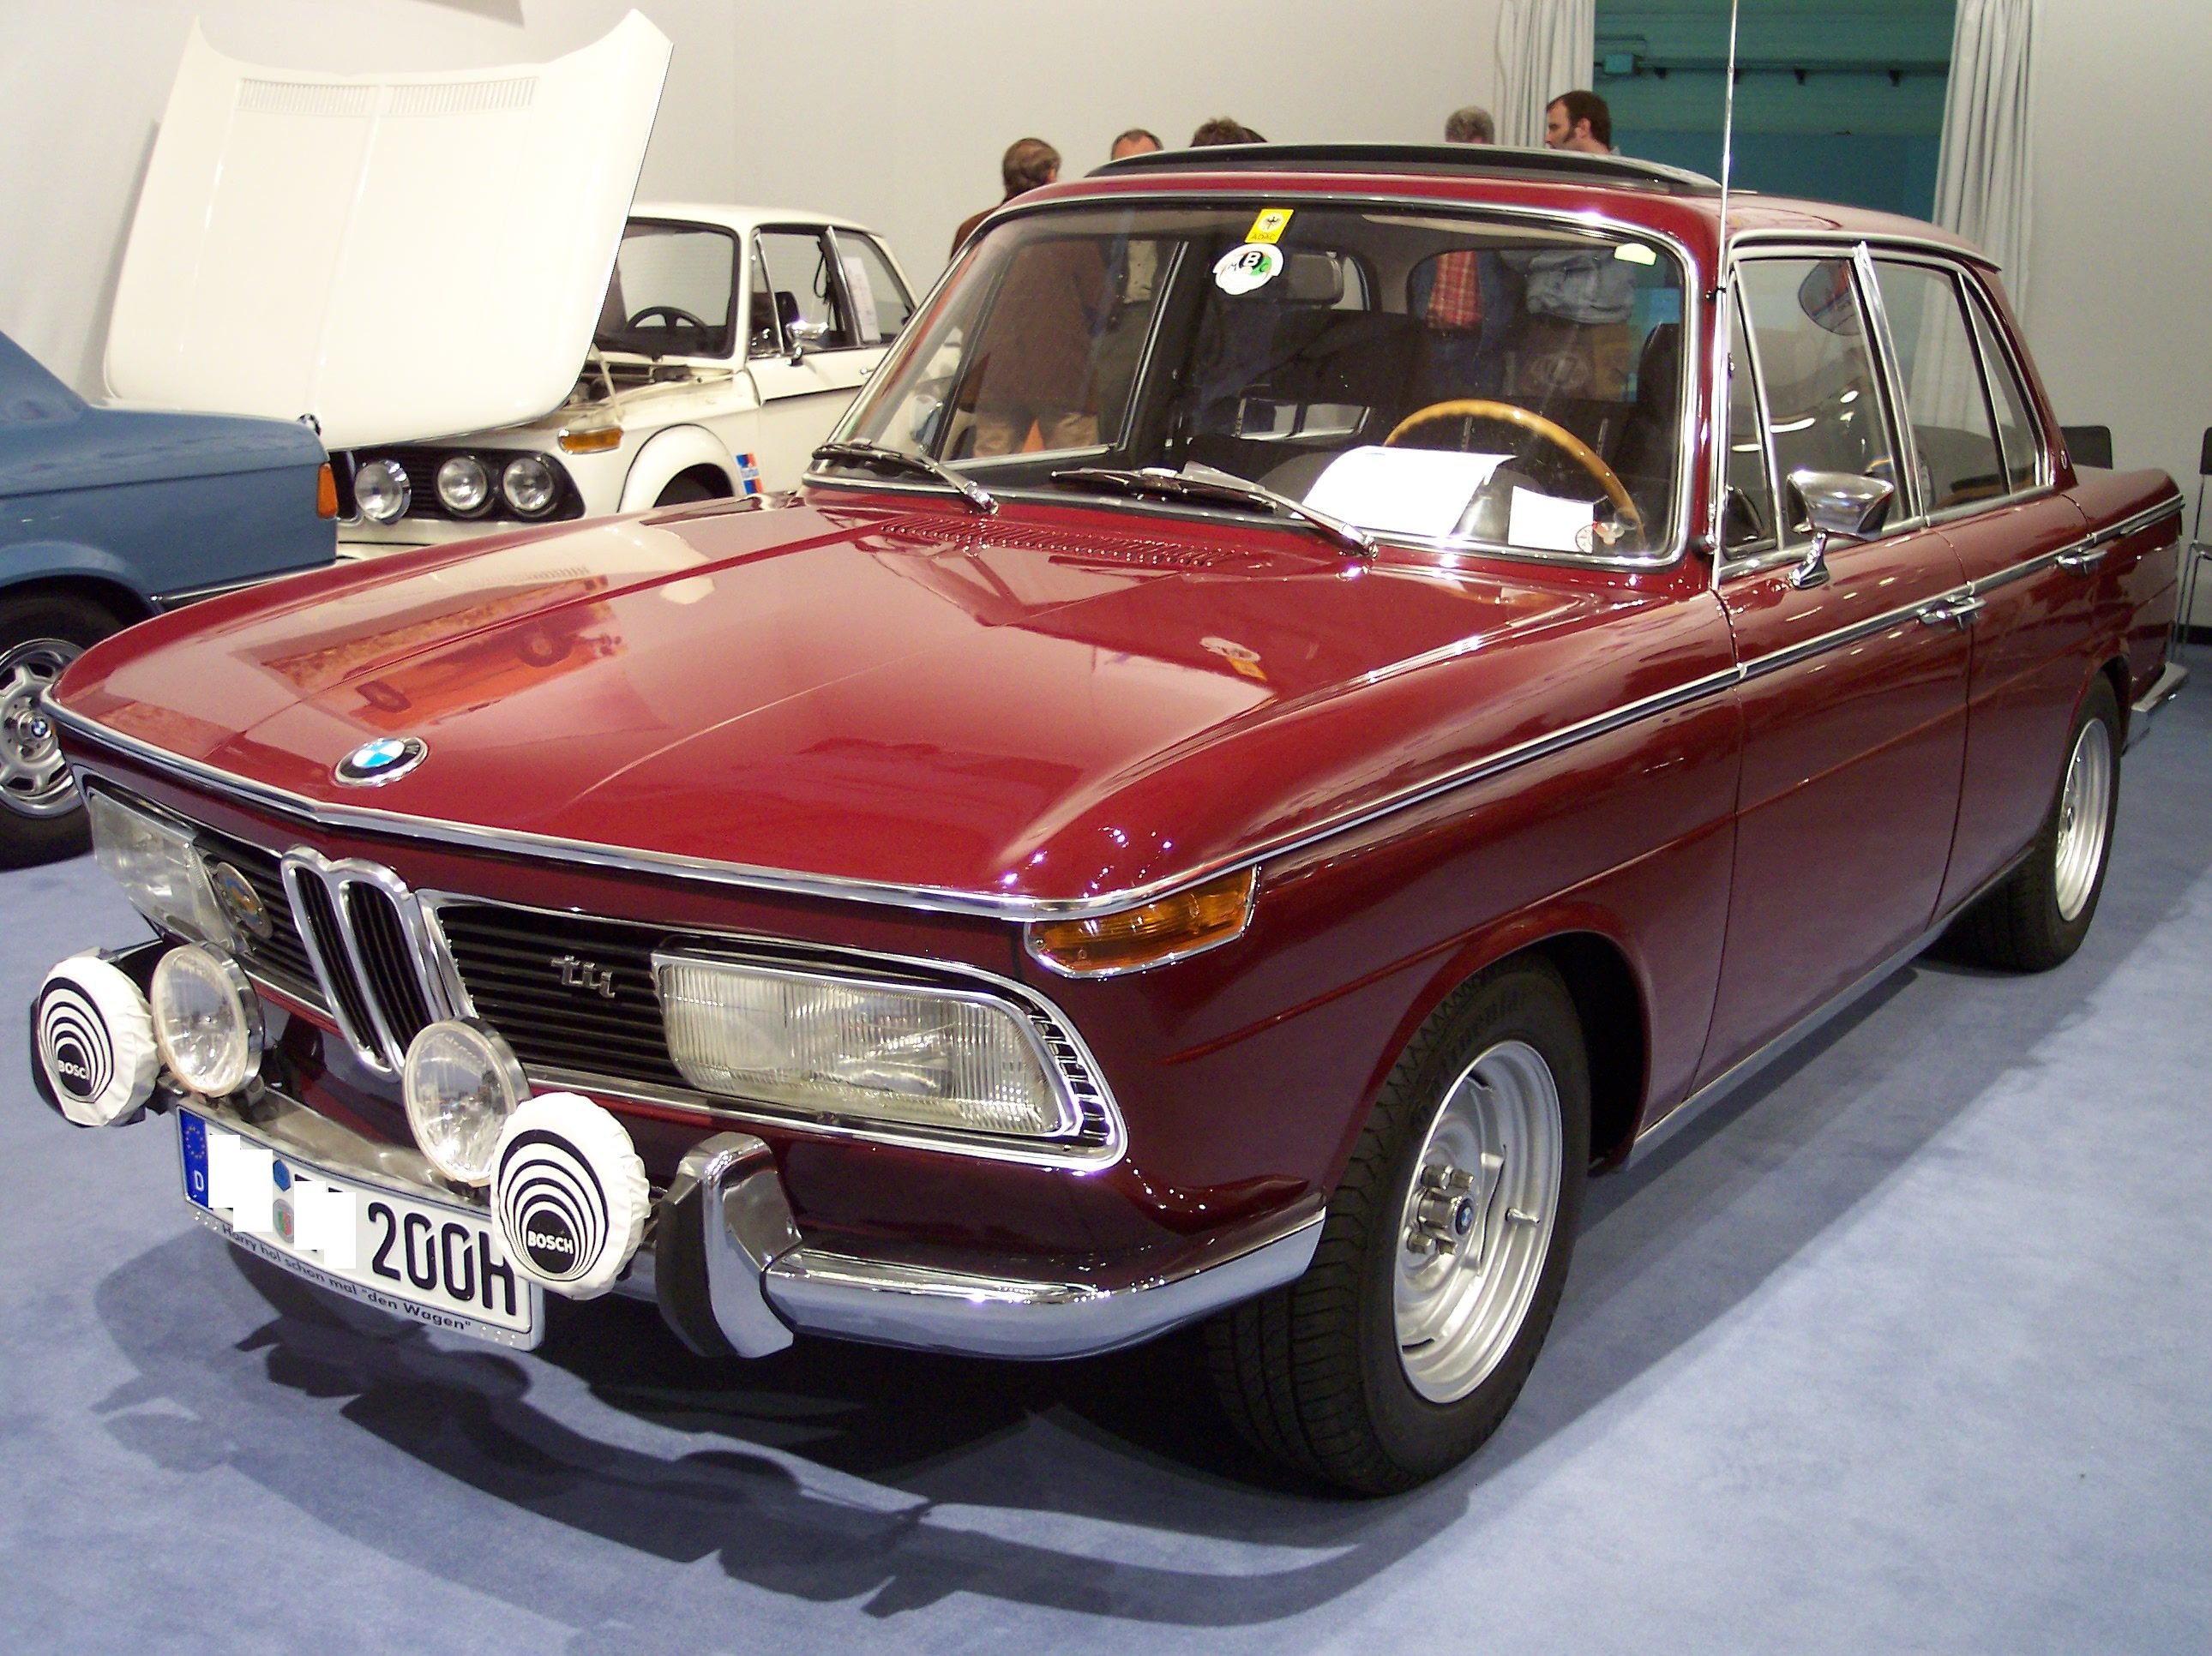 bmw 2000 images #3